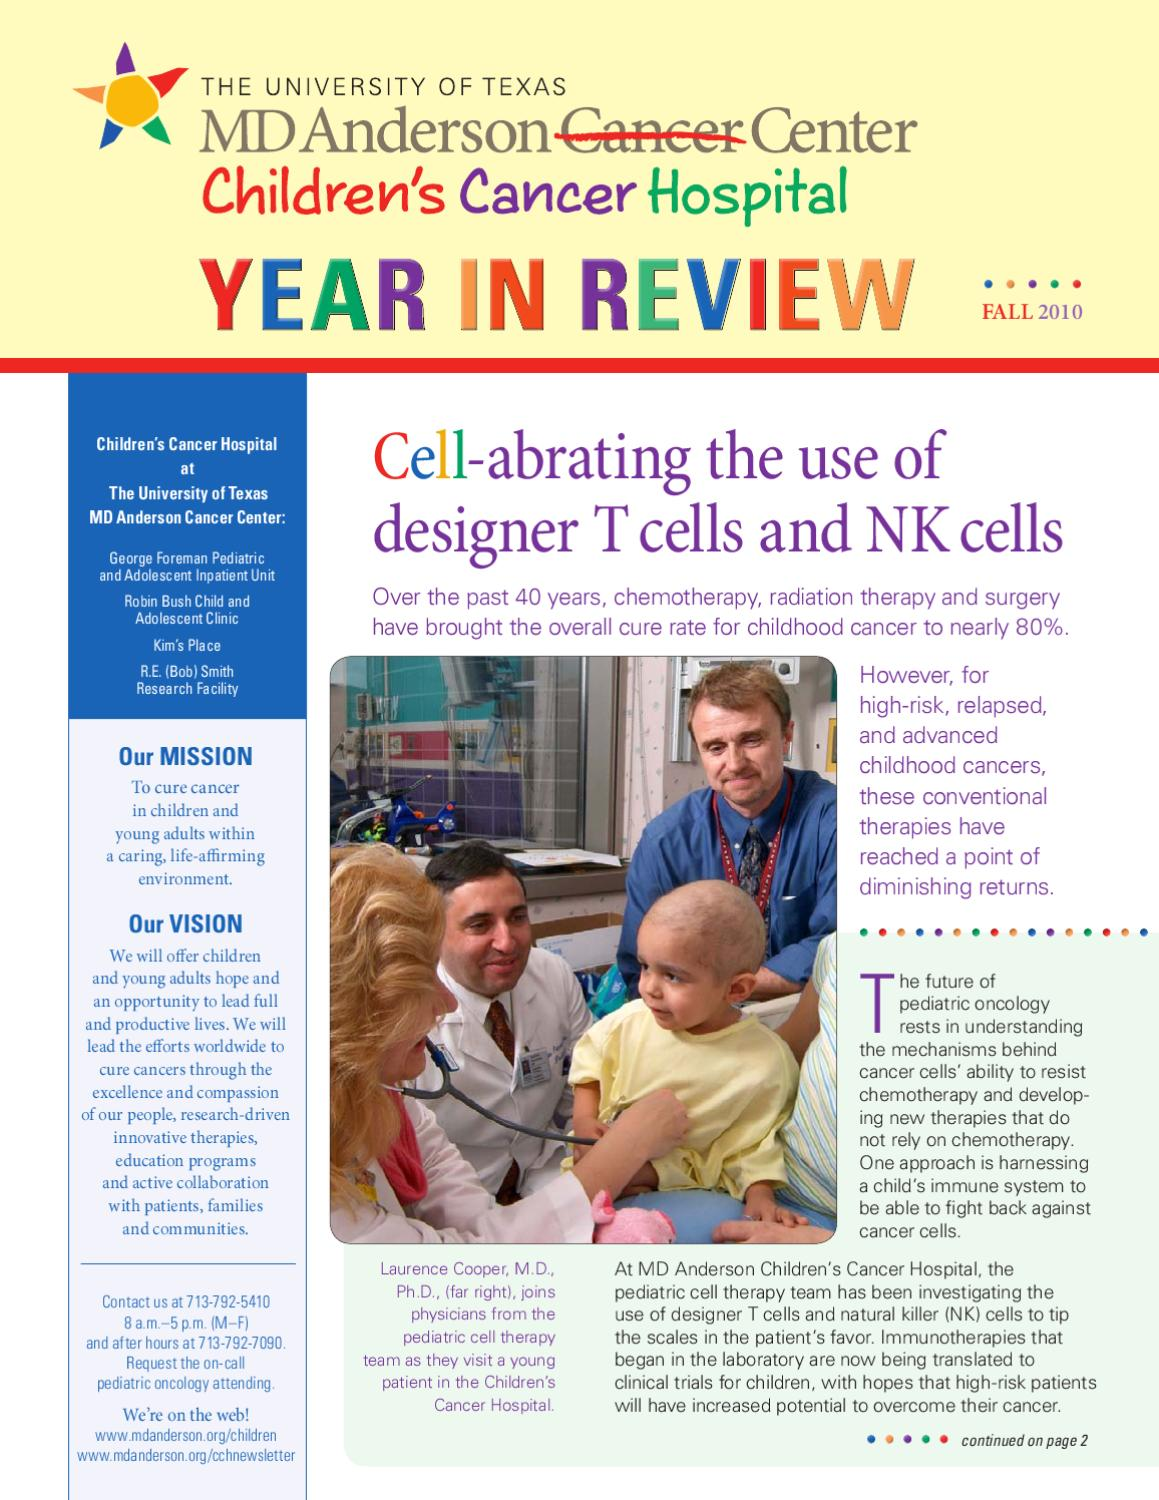 Children's Cancer Hospital Newsletter - Fall 2010 by MD Anderson Cancer  Center - issuu